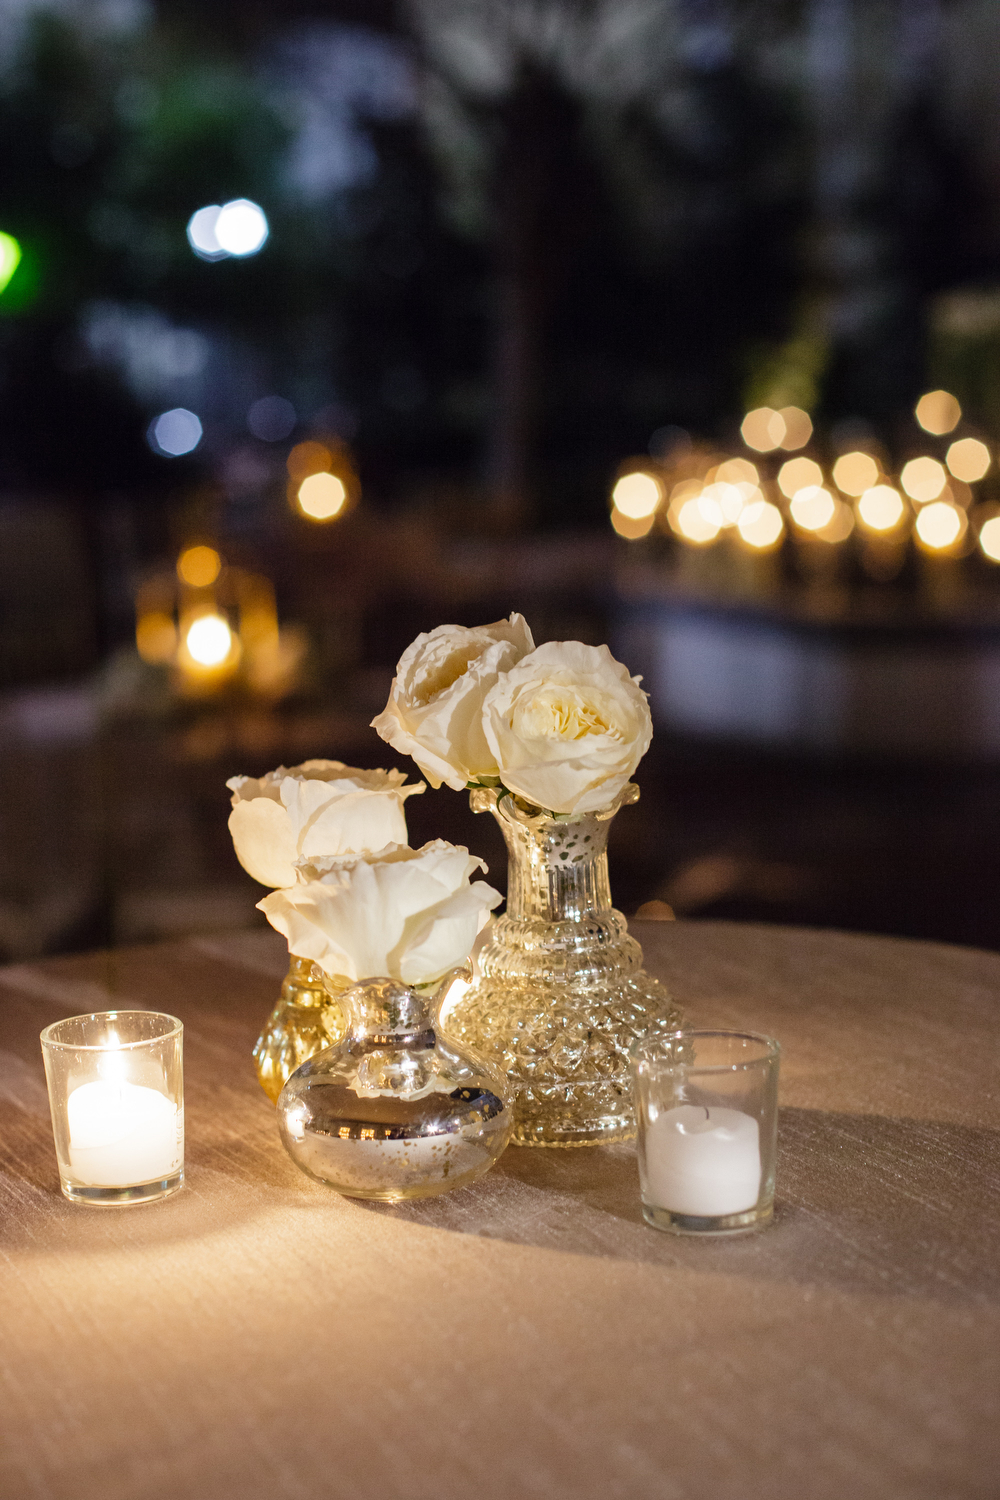 white florals in antique gold bud cases on table top outdoors in a courtyard at night